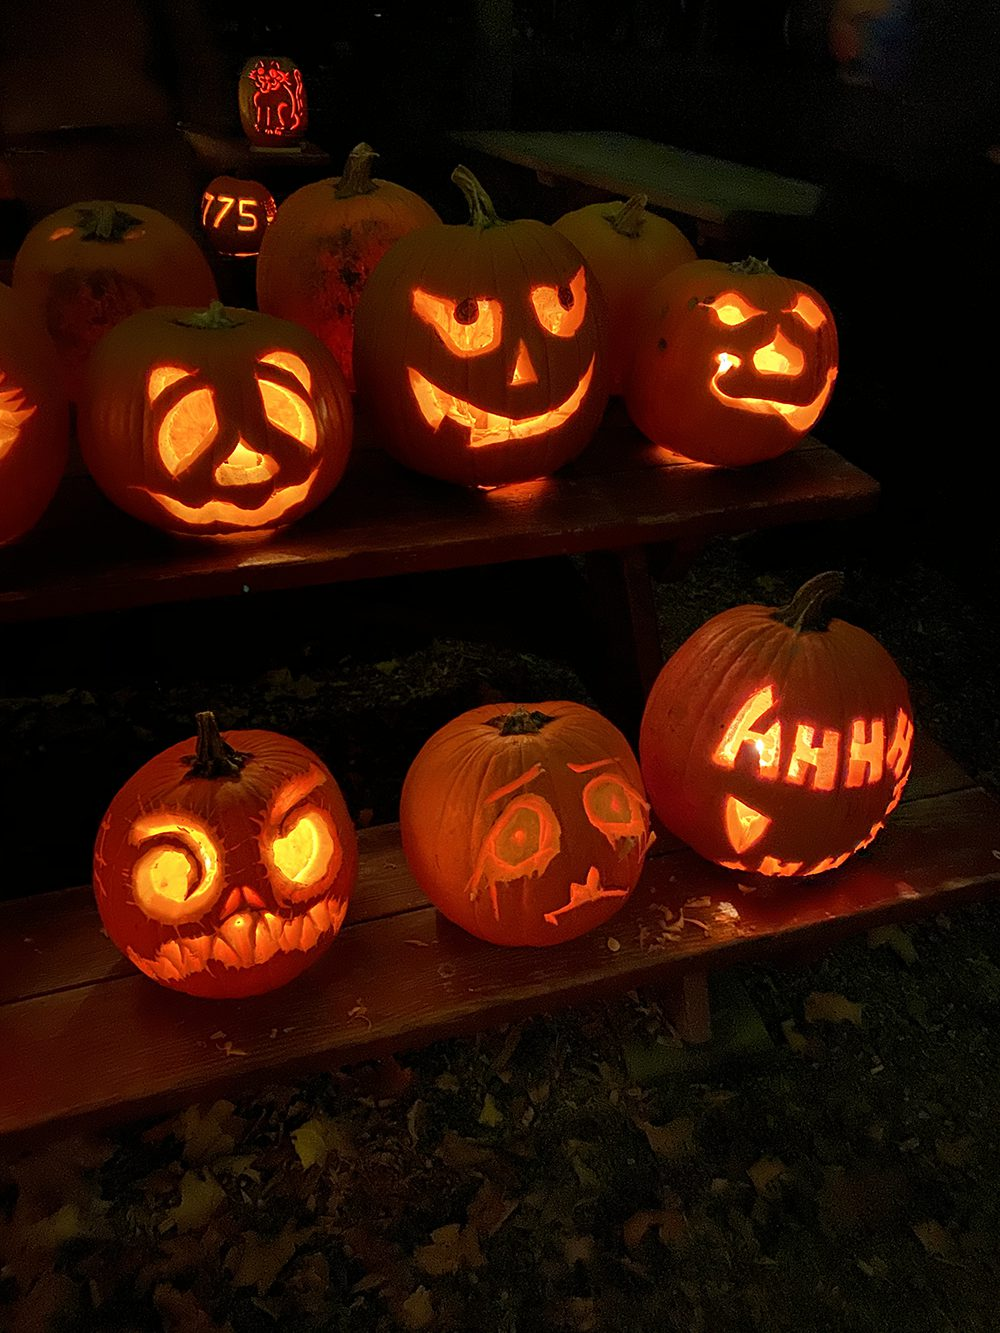 Jack O' Lanterns at the Halloweeen Hayride at Flamig Farm in Simsbury CT